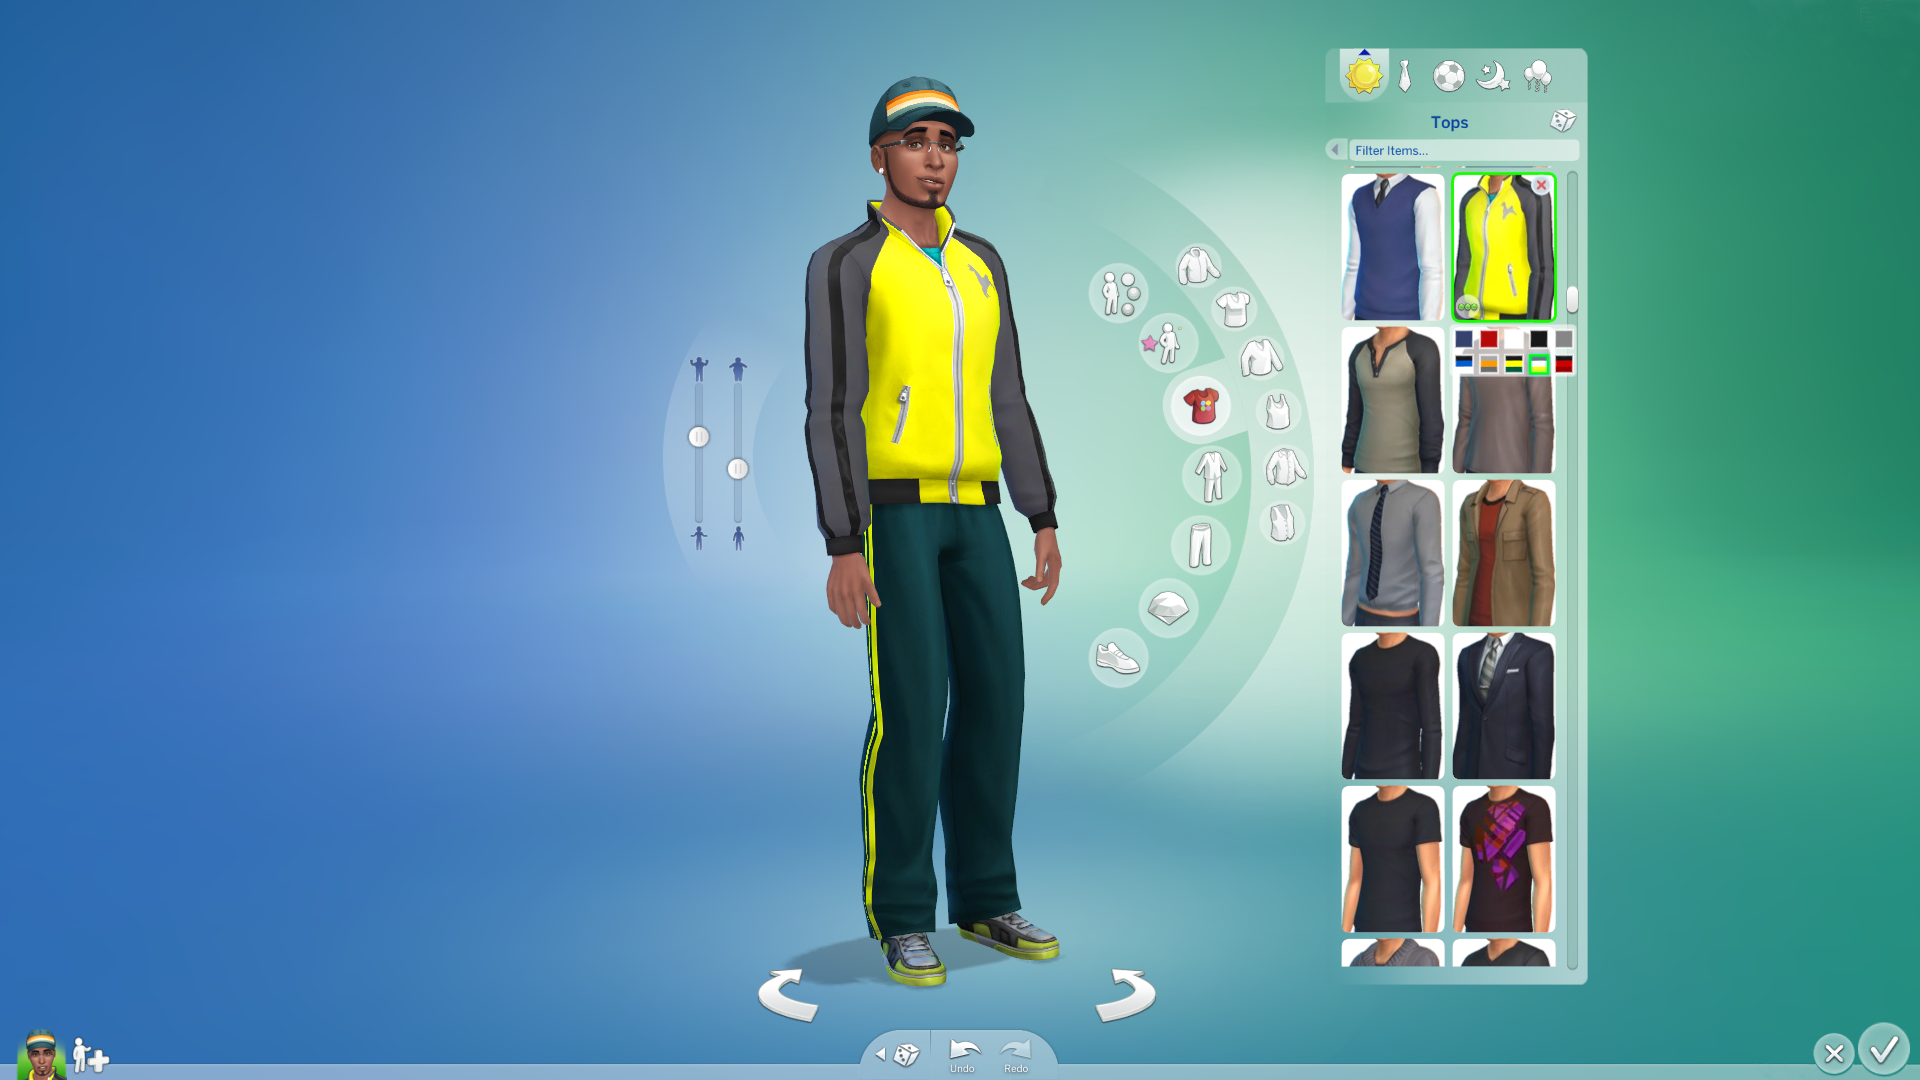 Screenshot from The SIms 4